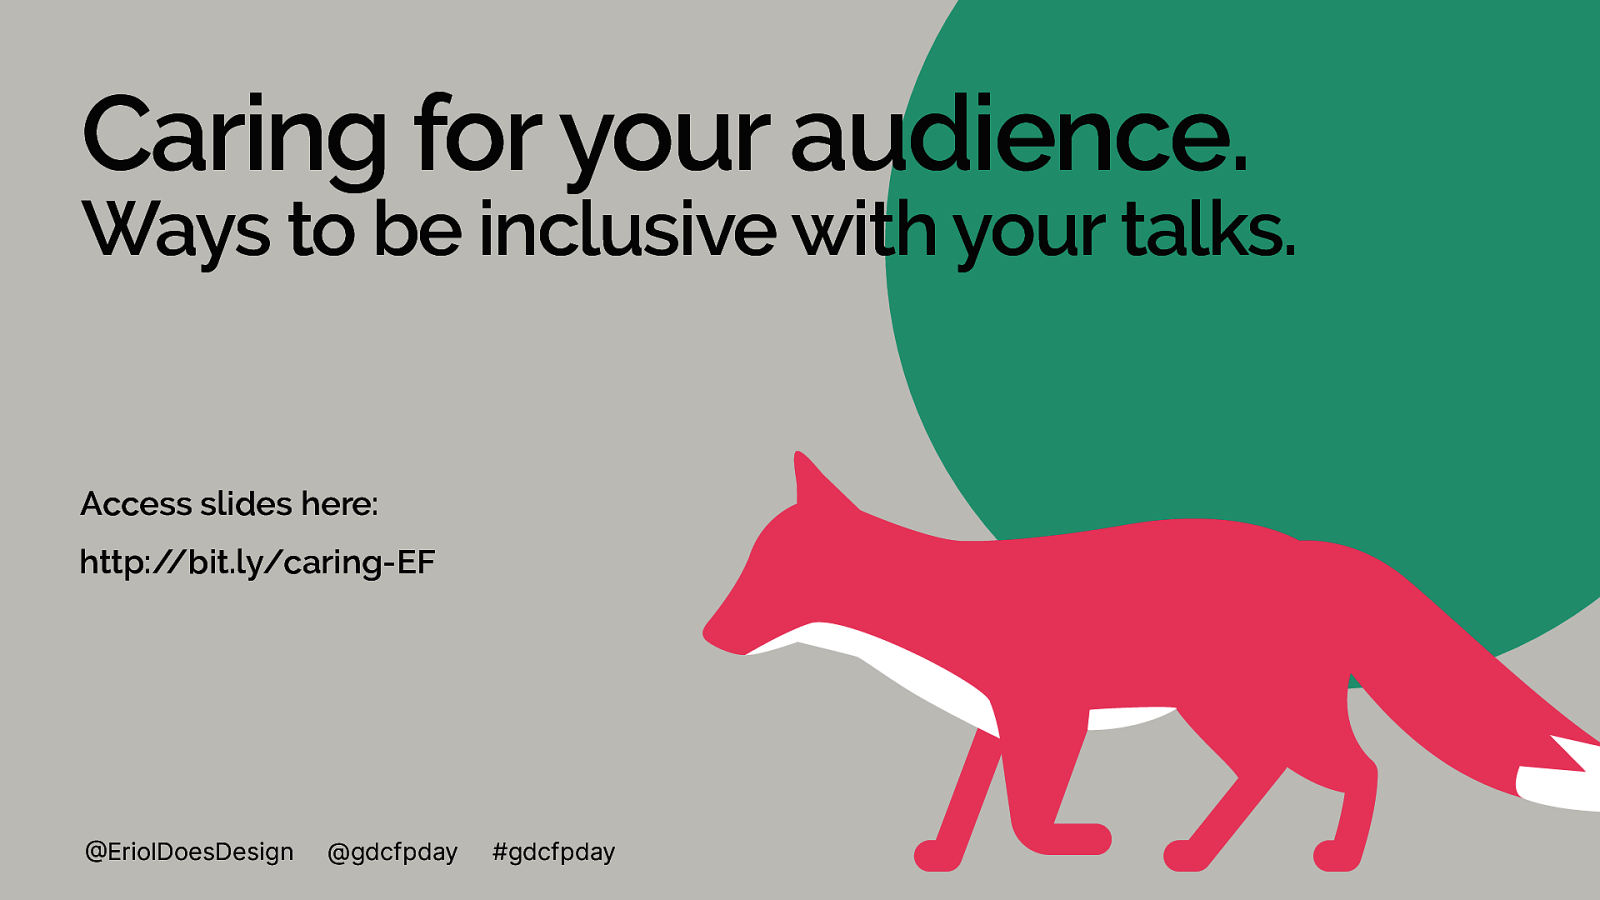 'Caring for your audience. Ways to be inclusive with your talks.'